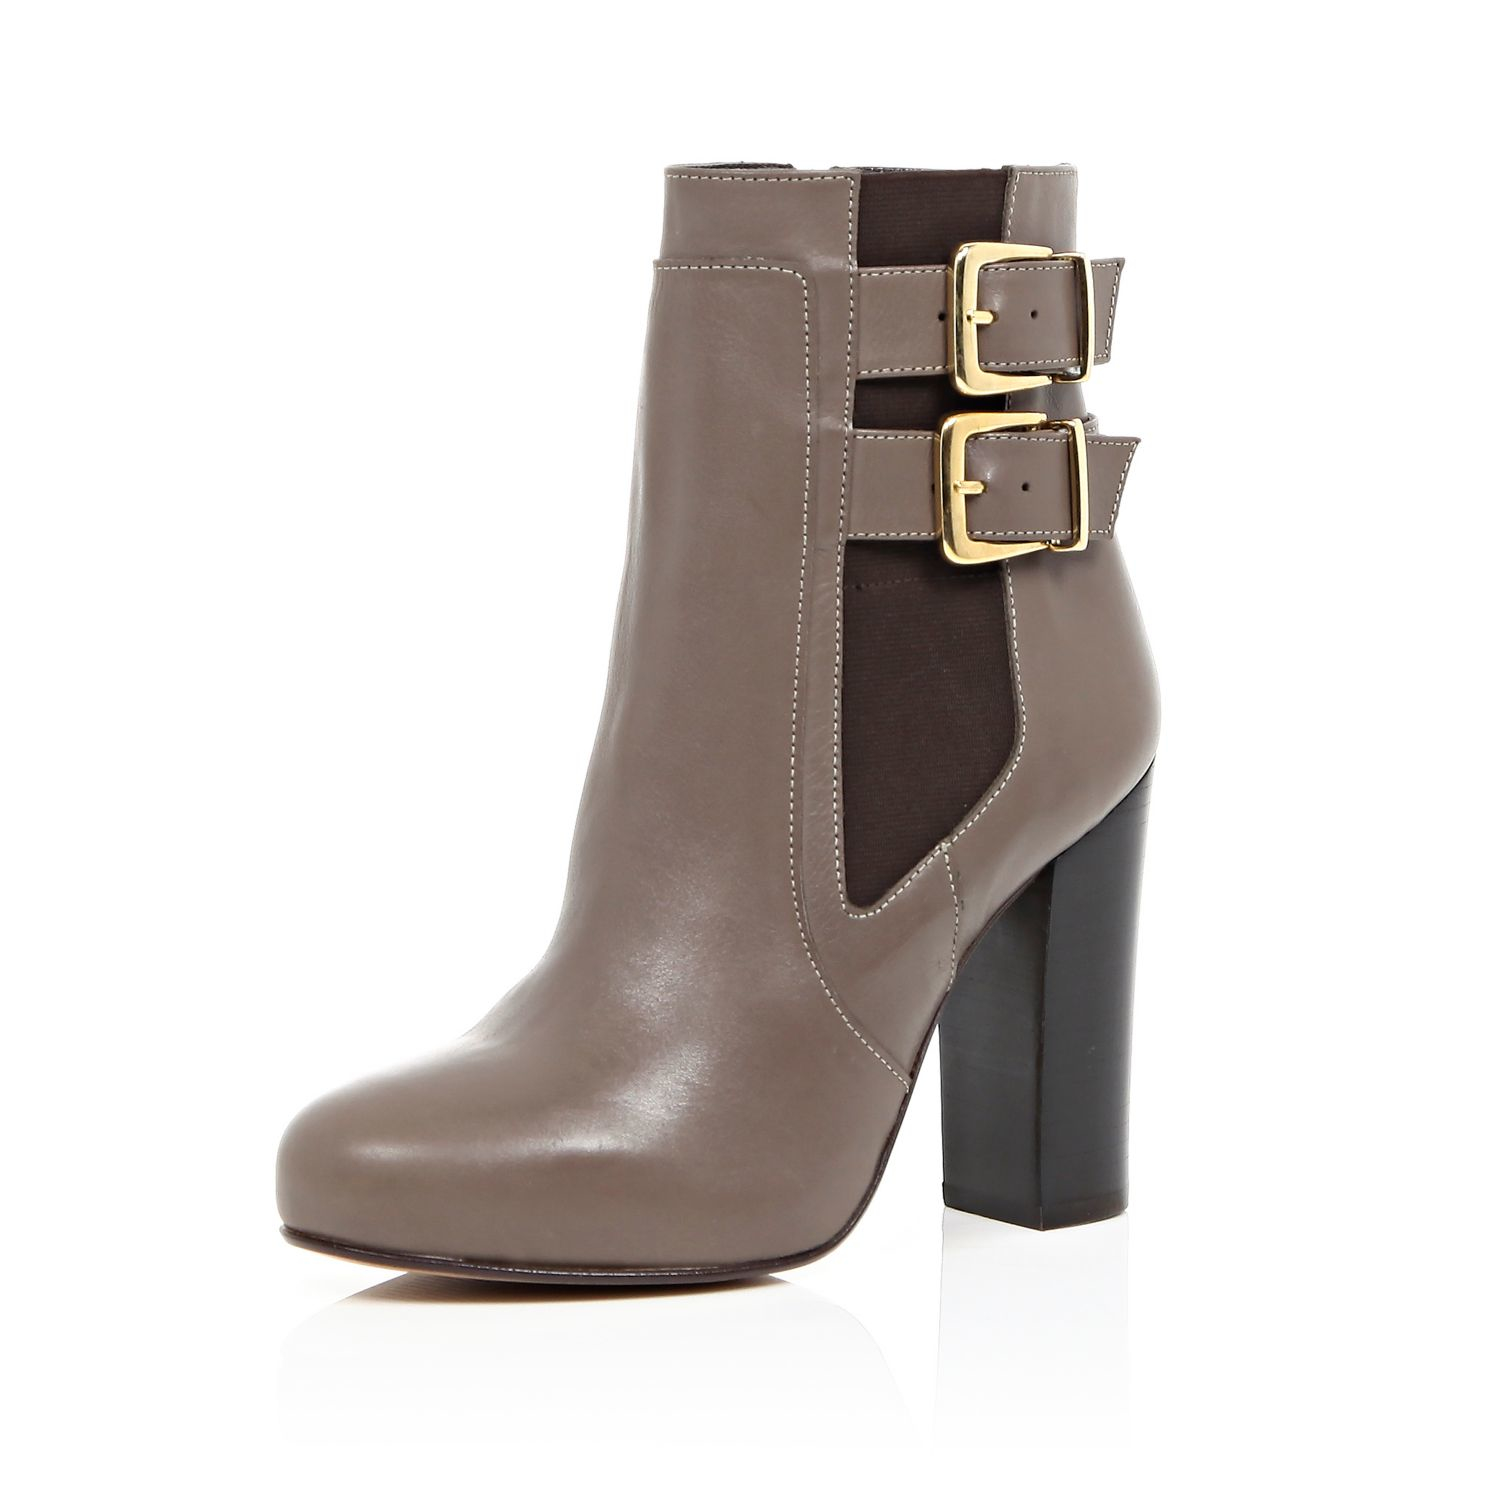 lyst river island beige leather buckle heeled ankle boots in natural. Black Bedroom Furniture Sets. Home Design Ideas